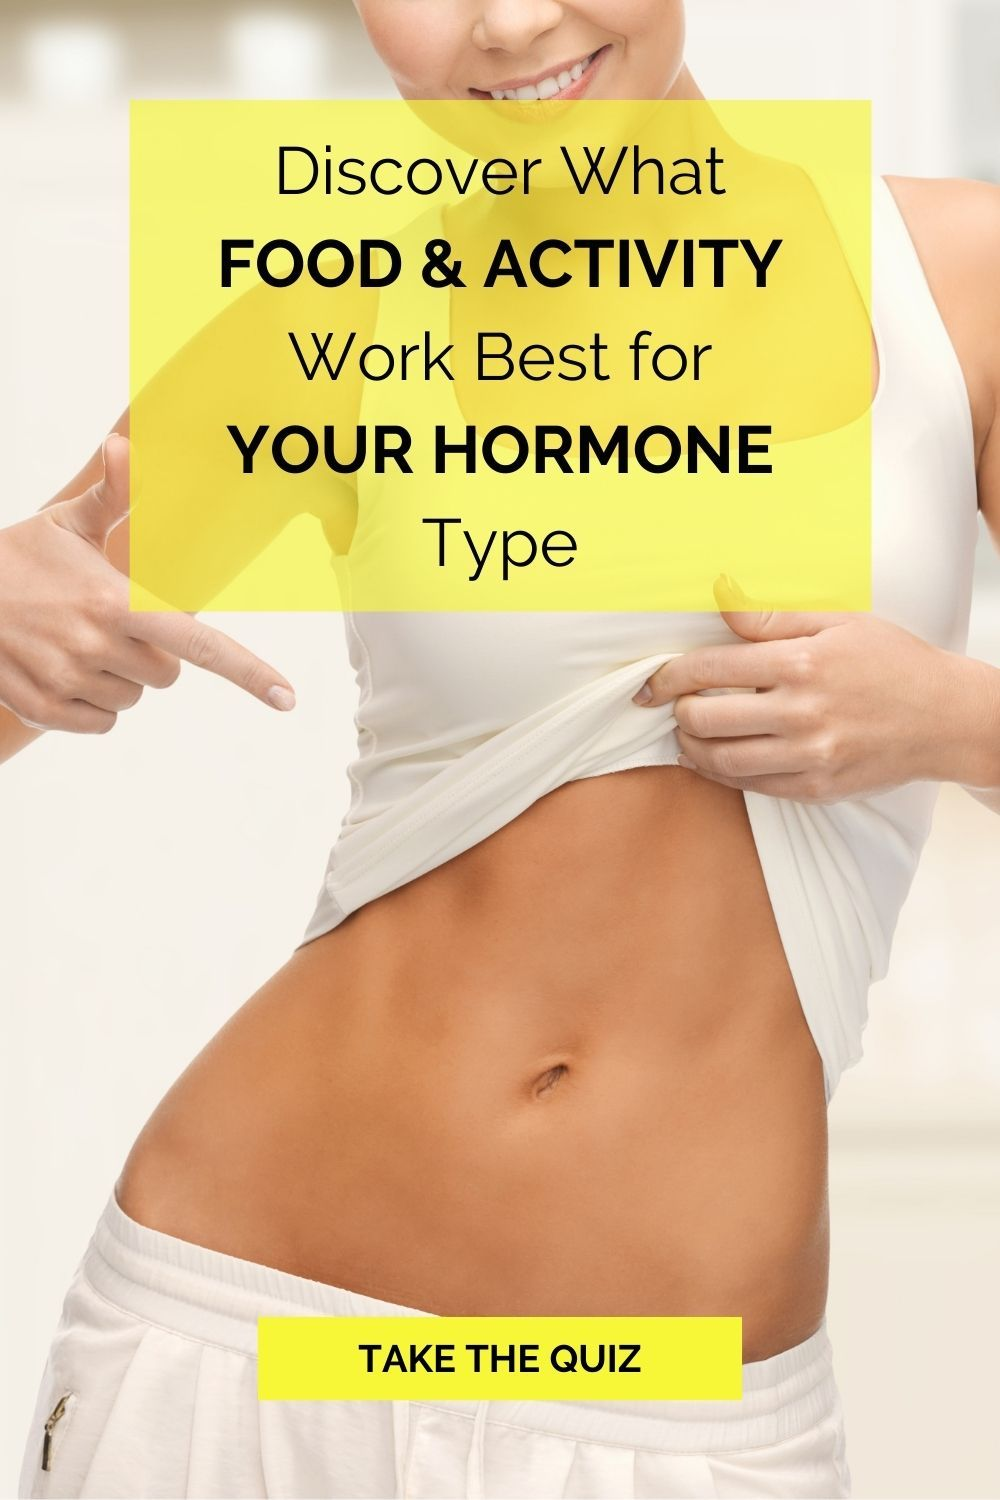 Learn what You Should Eat and How to Exercise to A